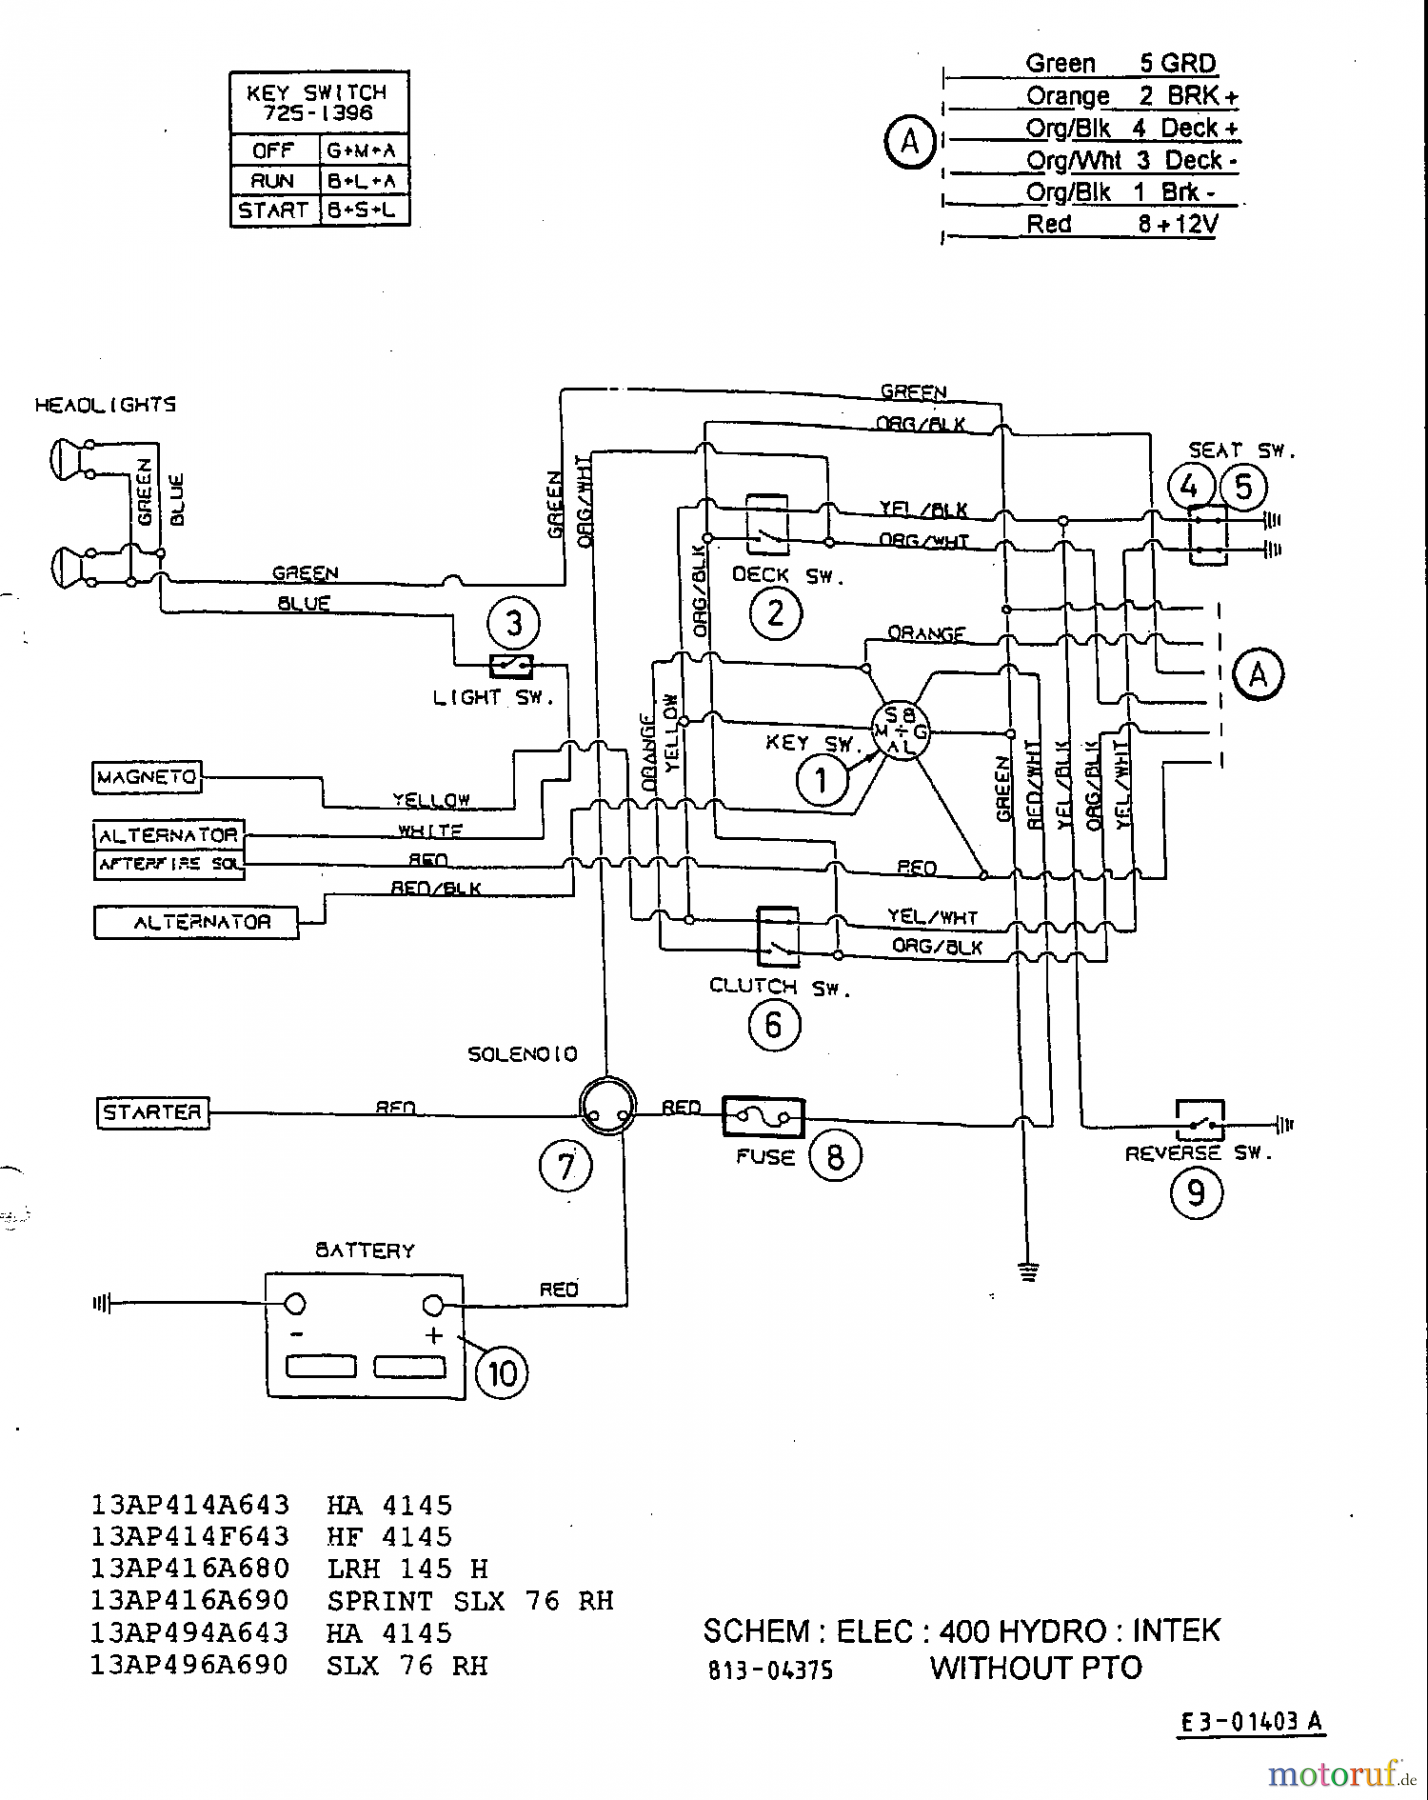 mtd riding mower wiring diagram with yard machine on mtd ride on rh pinterest com mtd wiring diagrams mtd wiring diagram model 13ah660f352